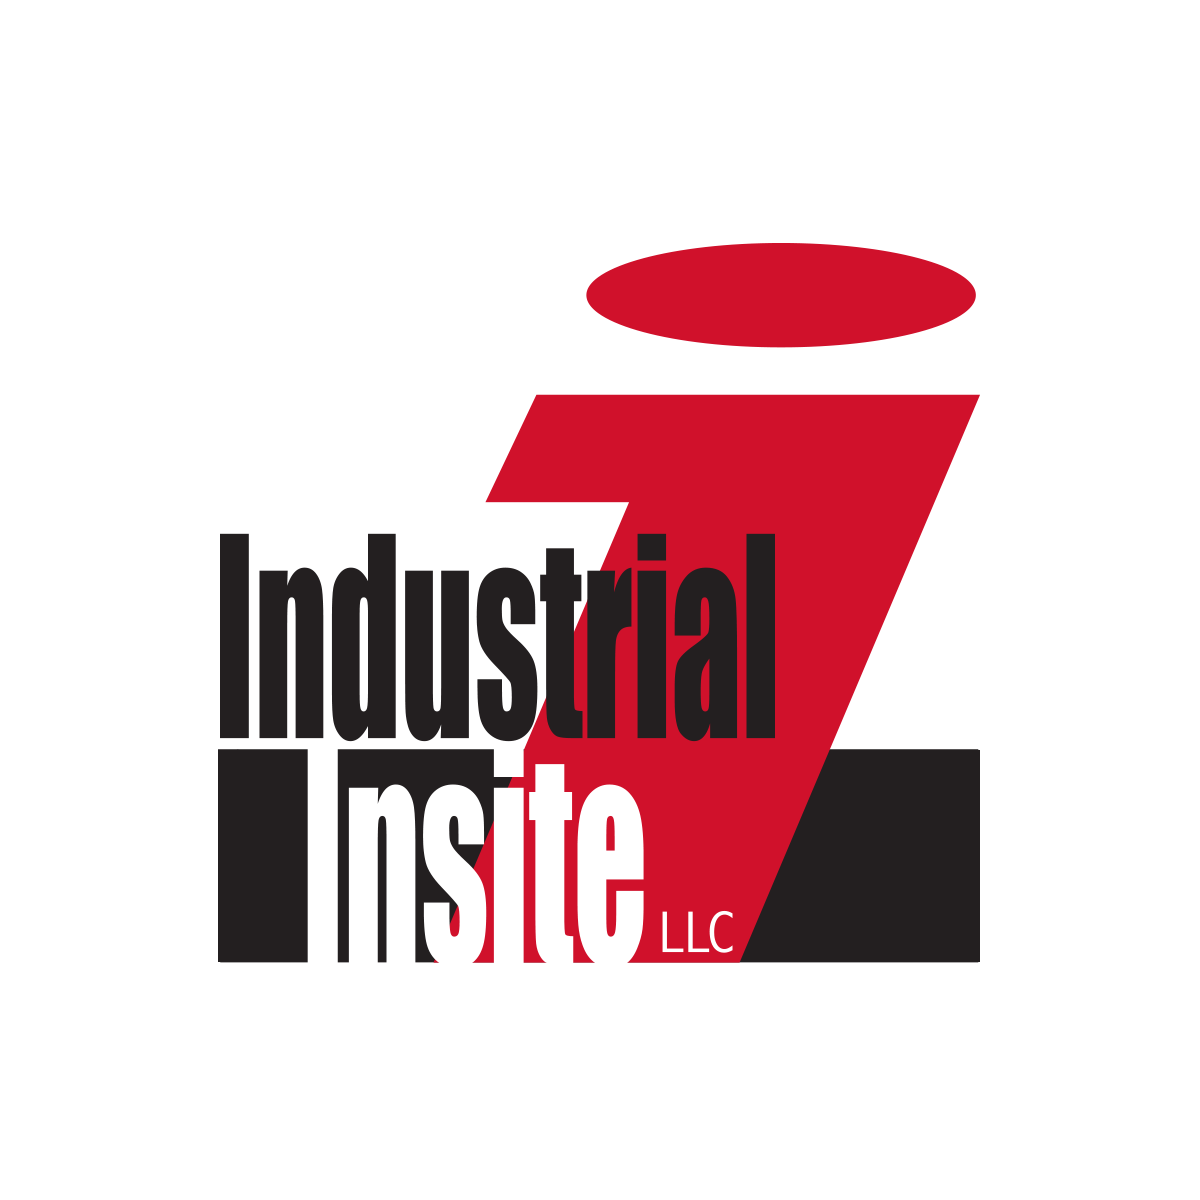 Soldering Training and IPC Certification - Industrial Insite